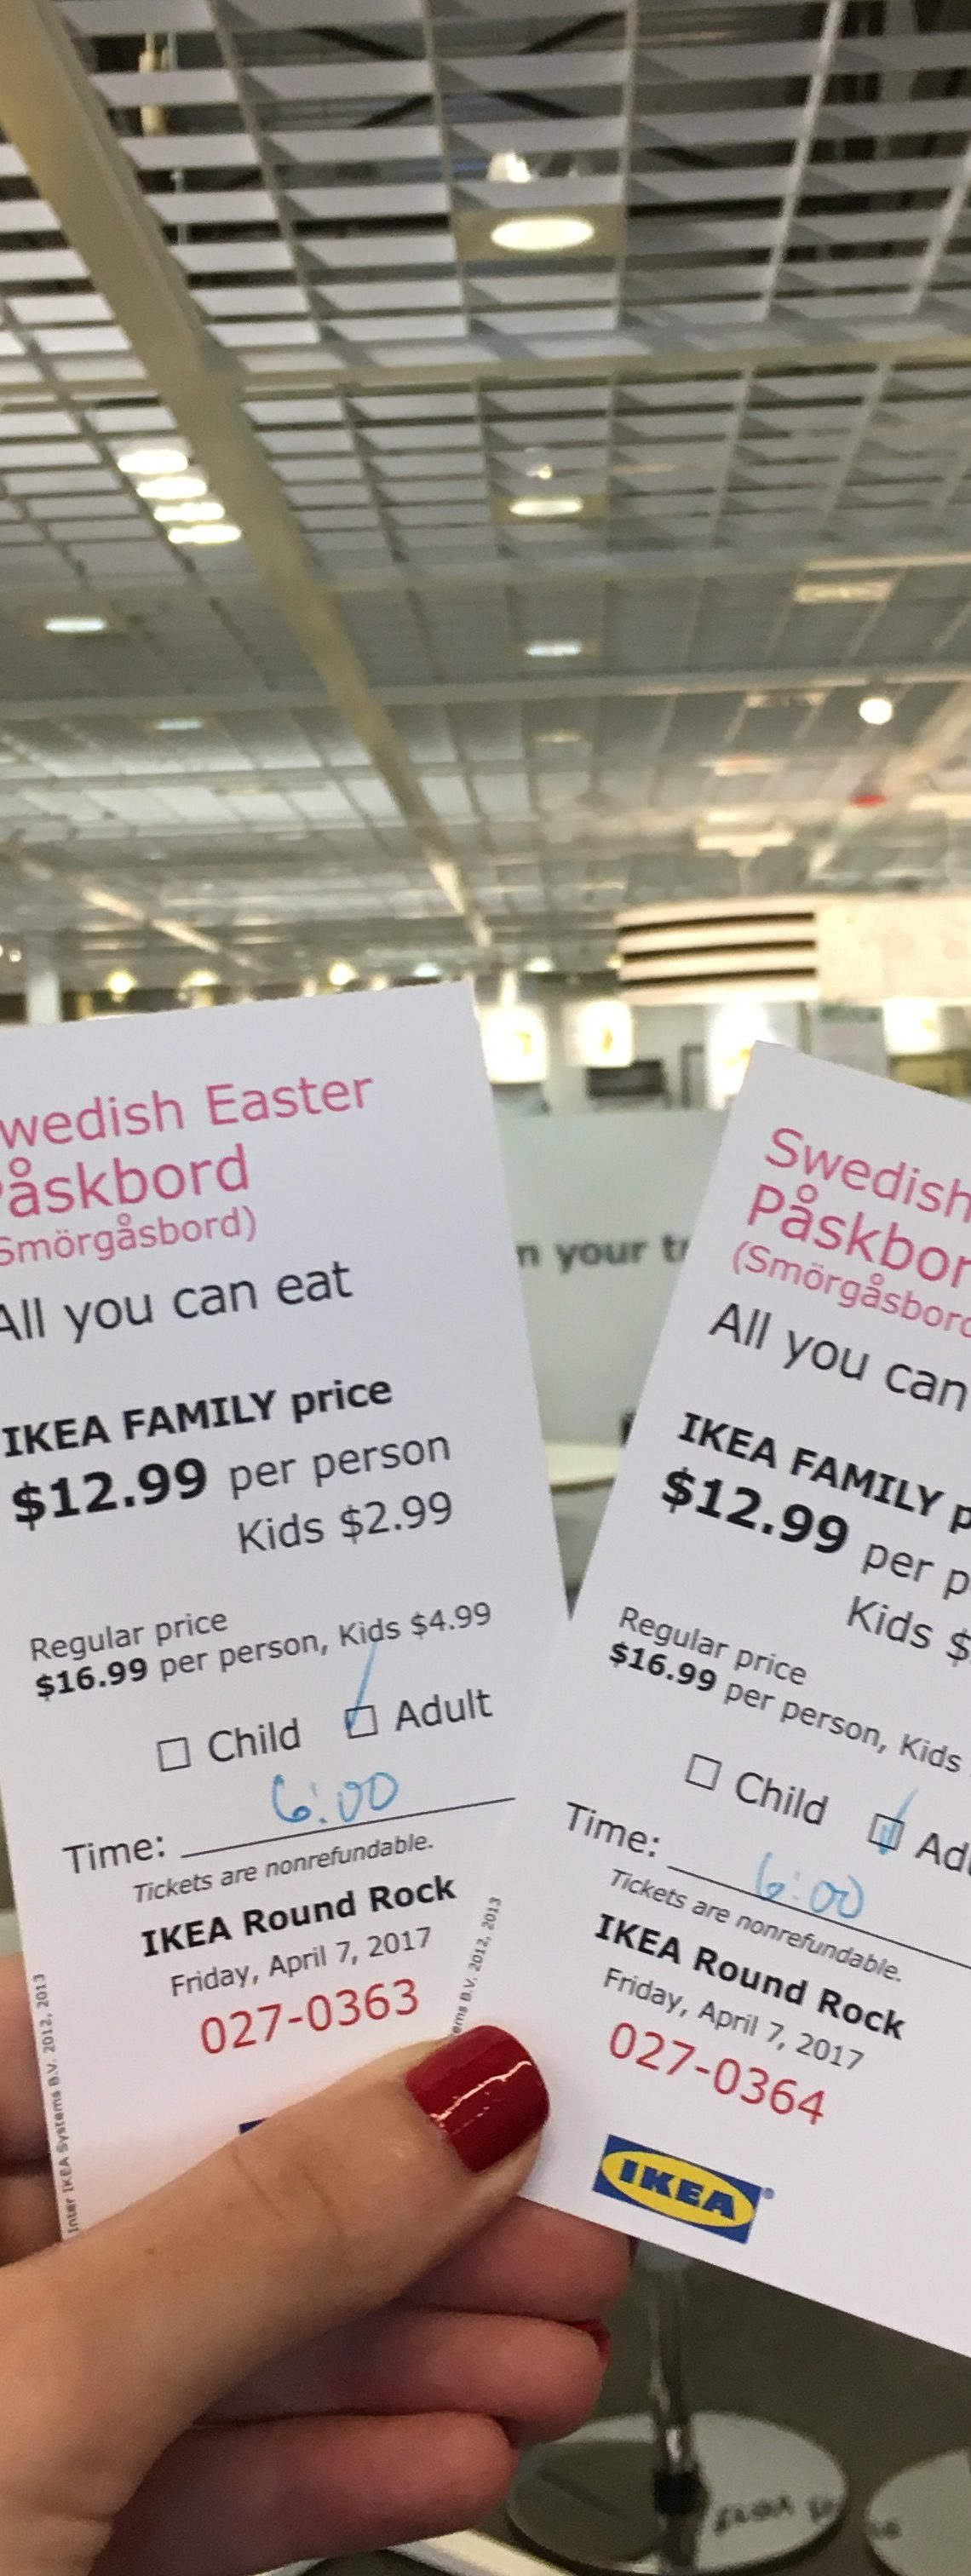 IKEA Påskbord Smörgåsbord | USA | The Travel Medley